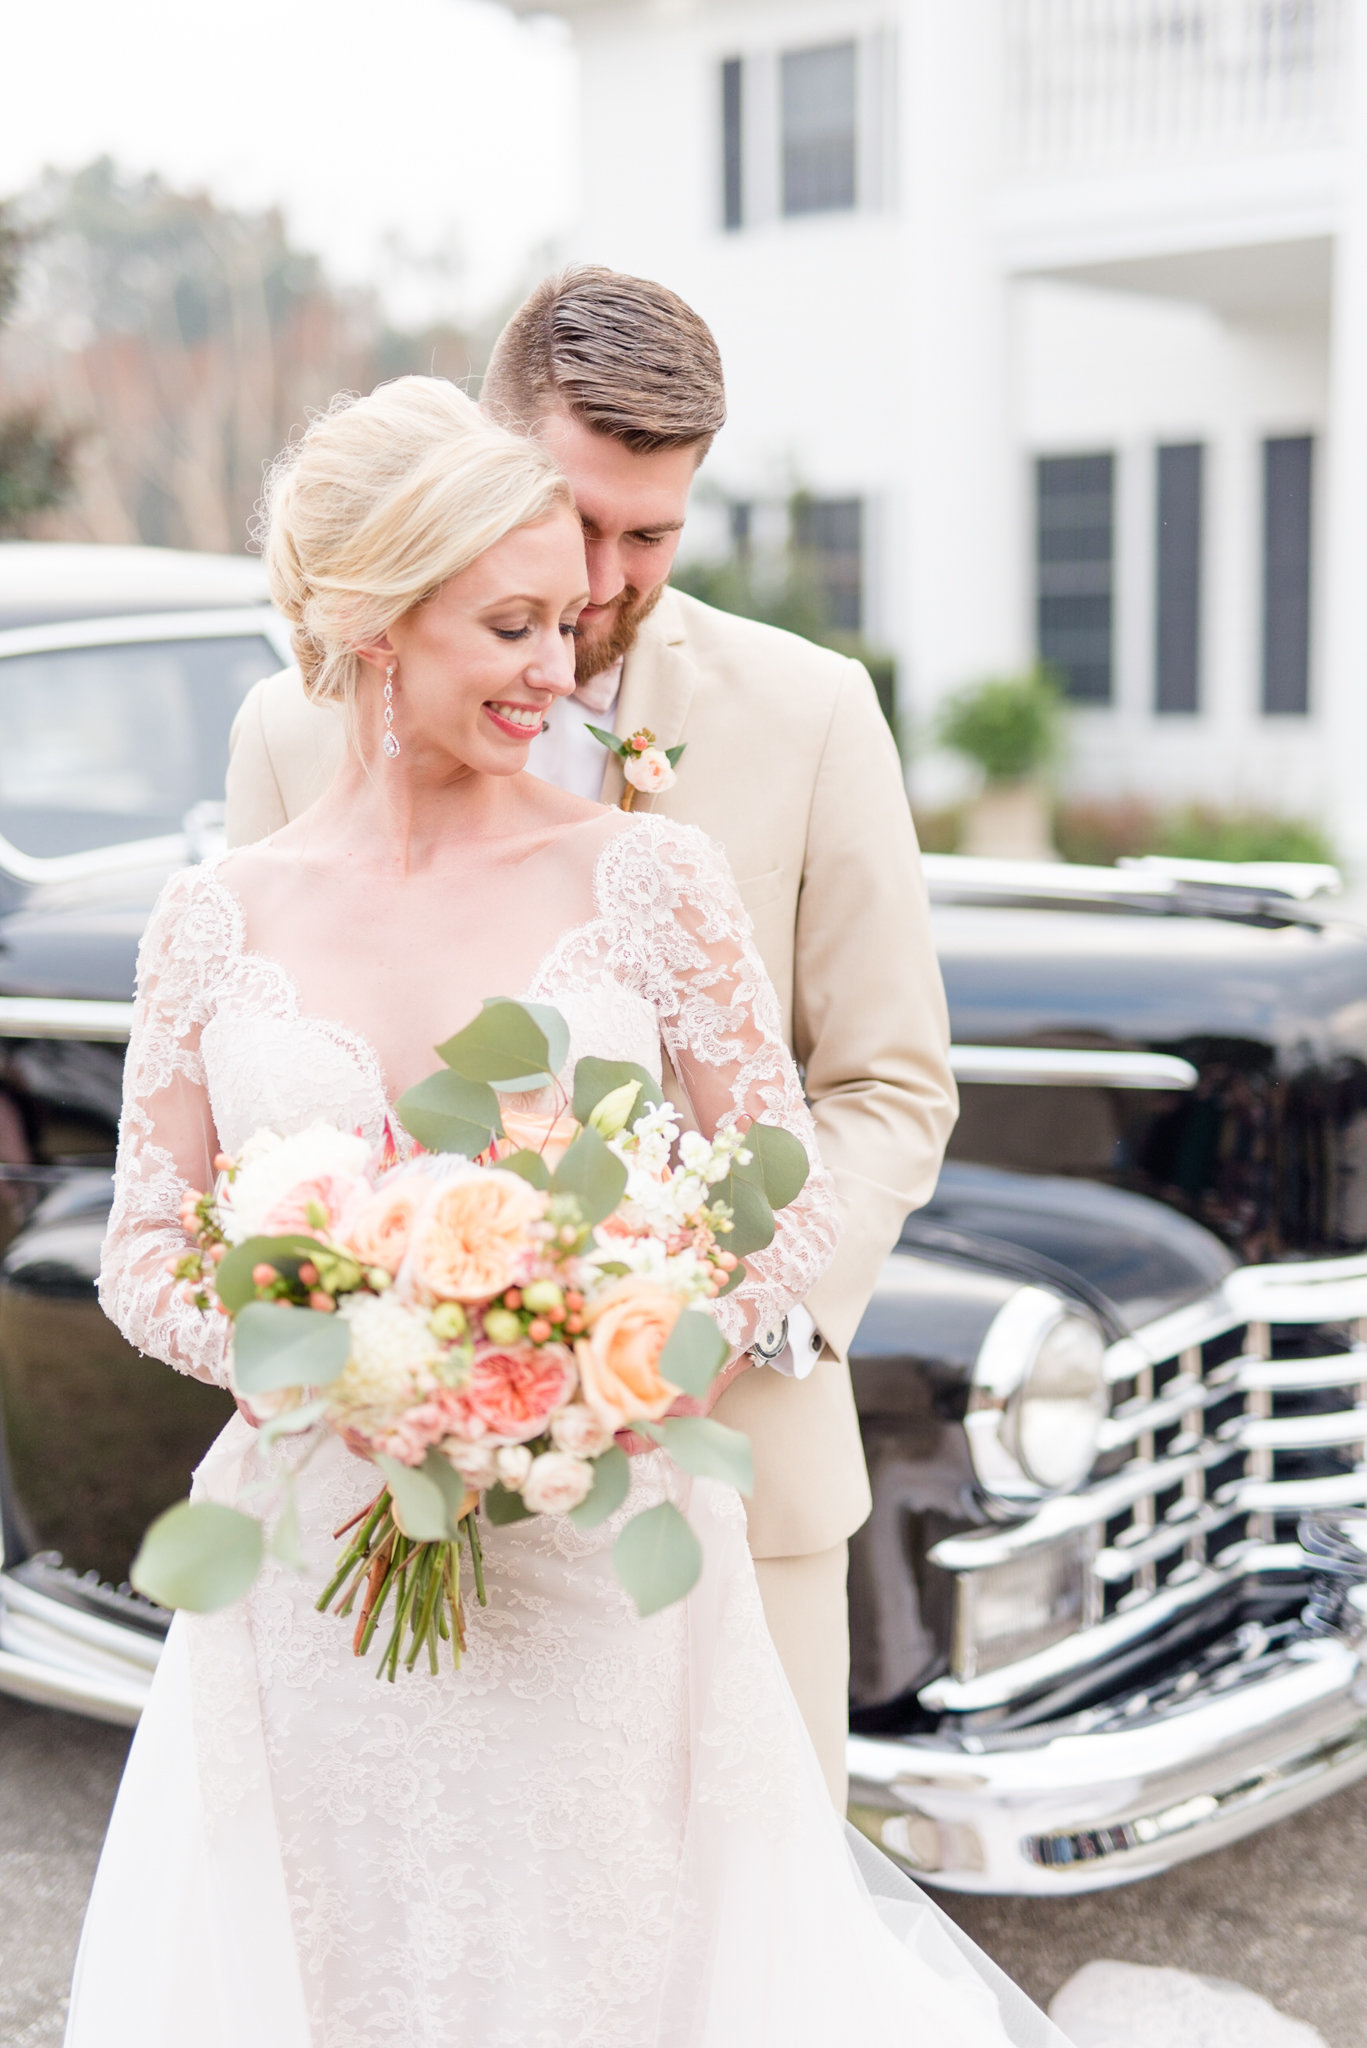 Bride and groom stand in front of classic car.